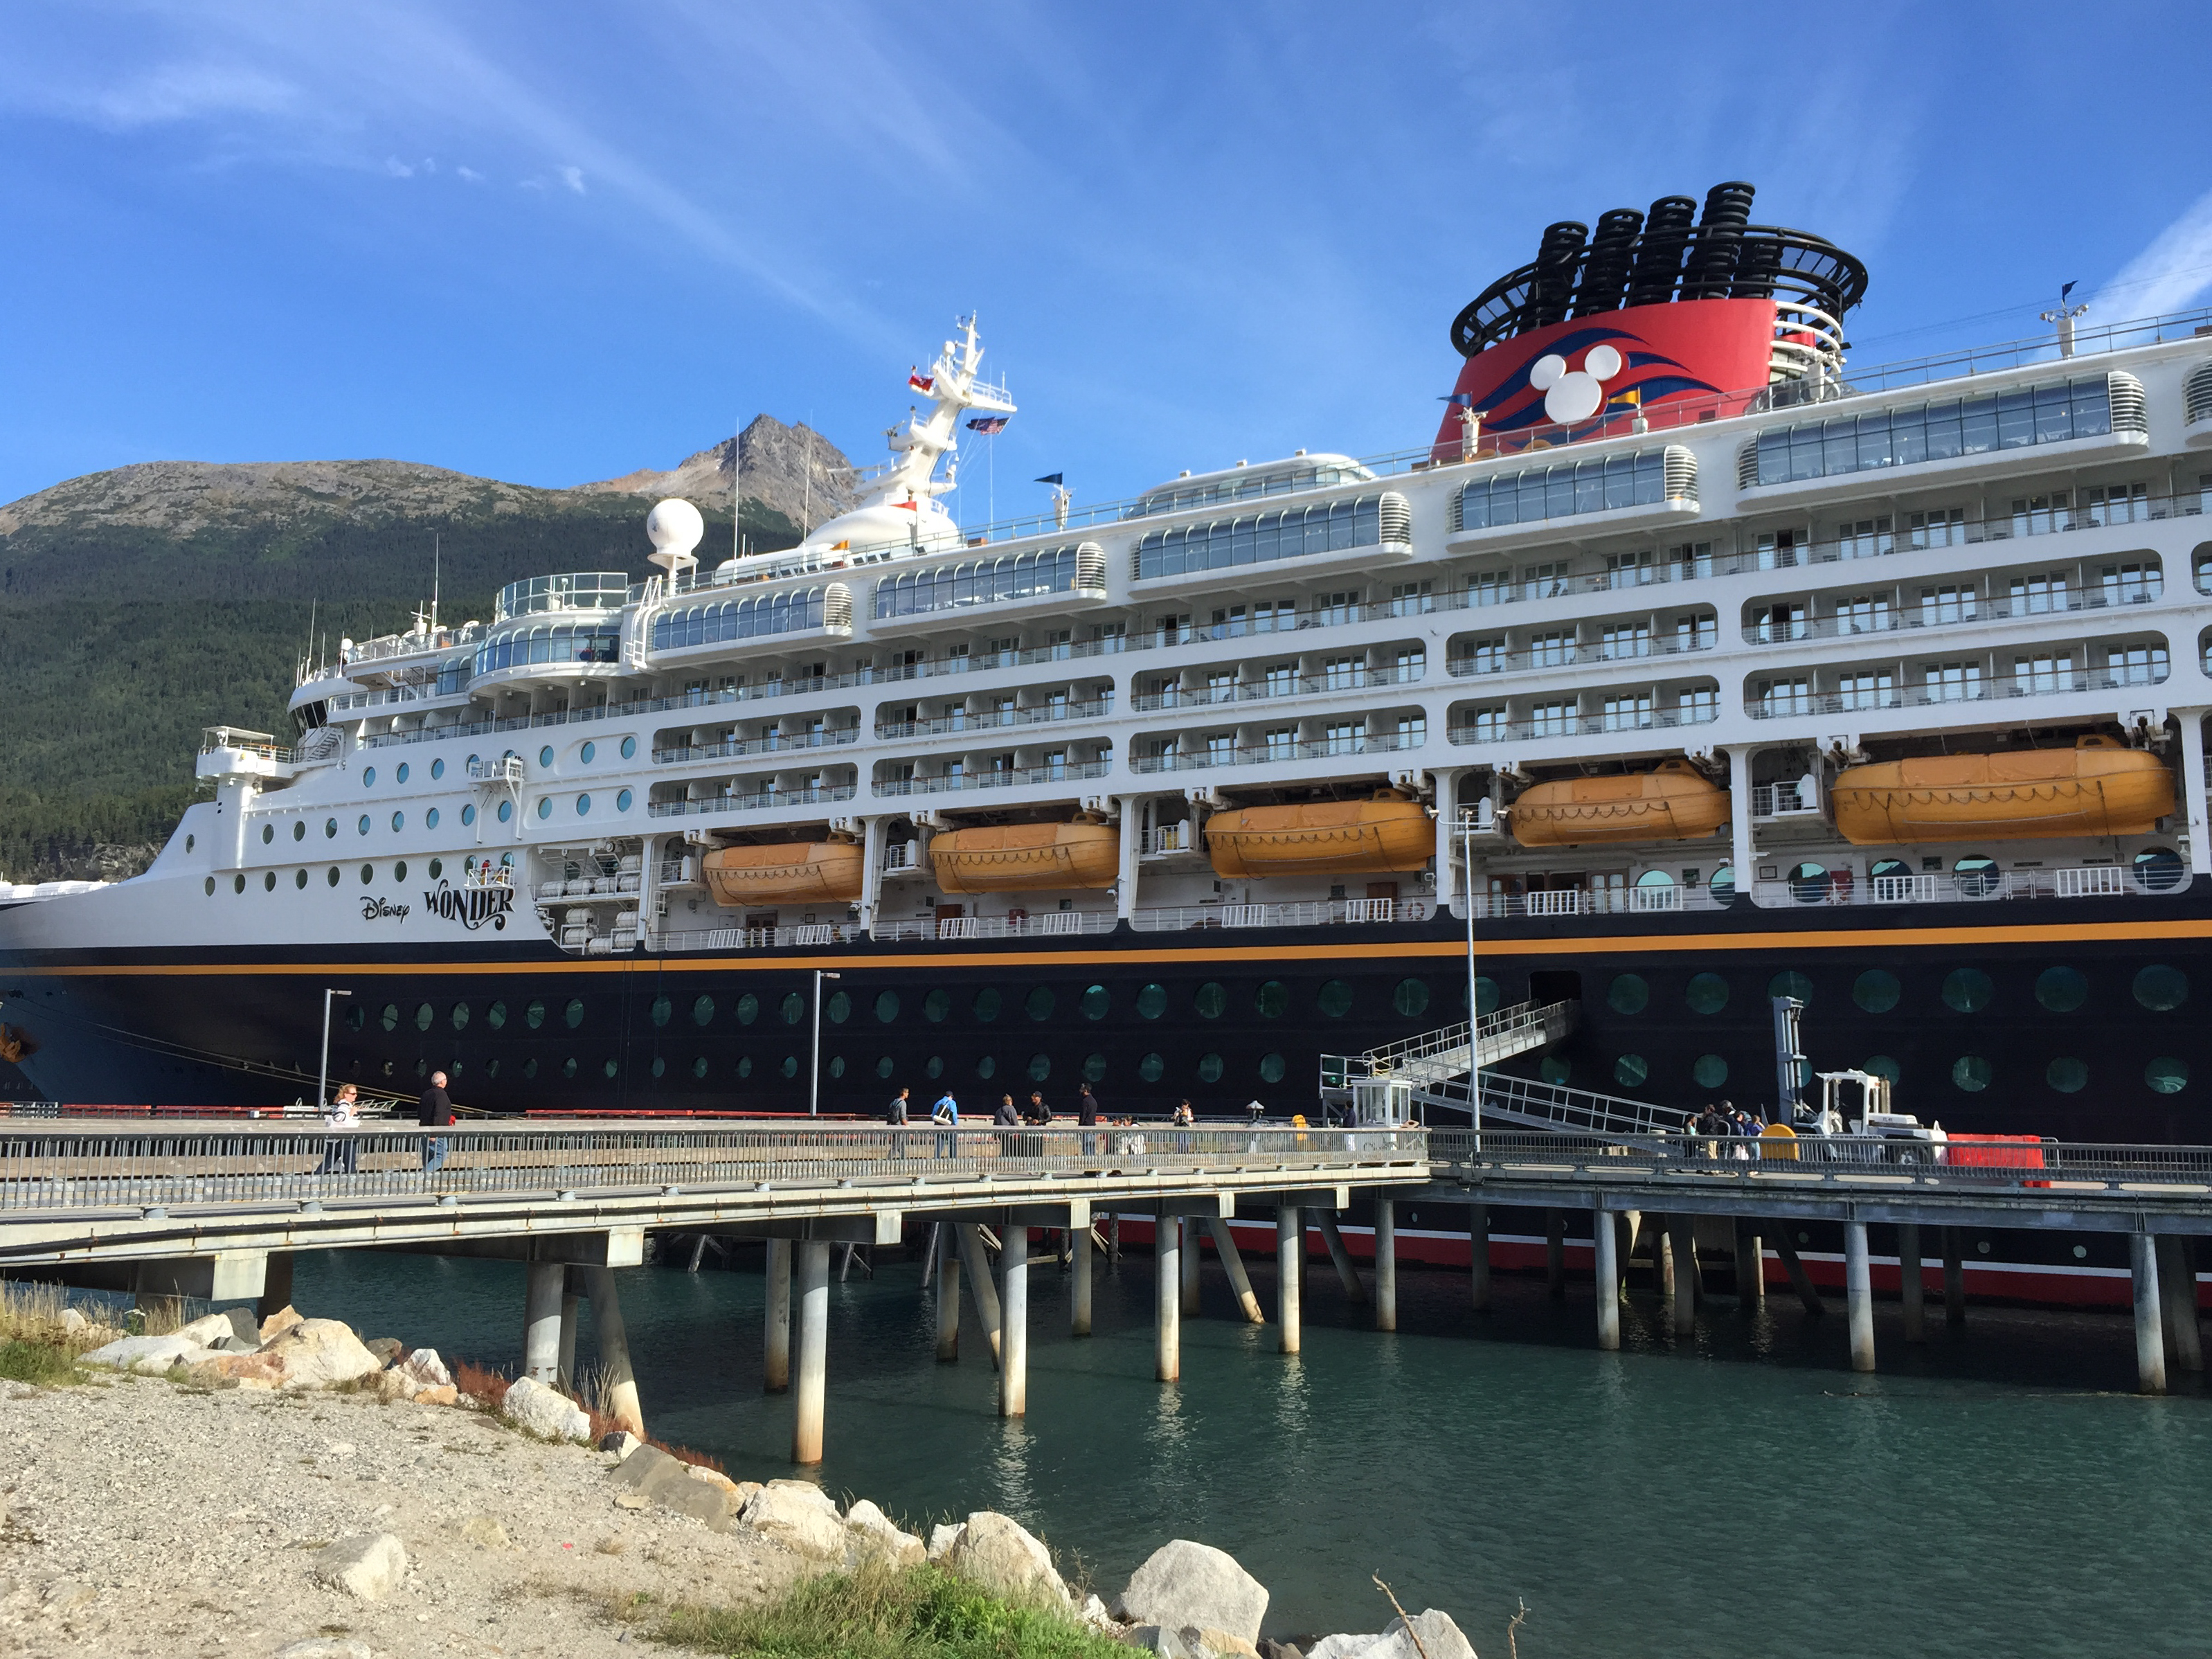 Bob Sehlinger39s Blog  Disney Cruise Line 2017 Summer Itineraries  April